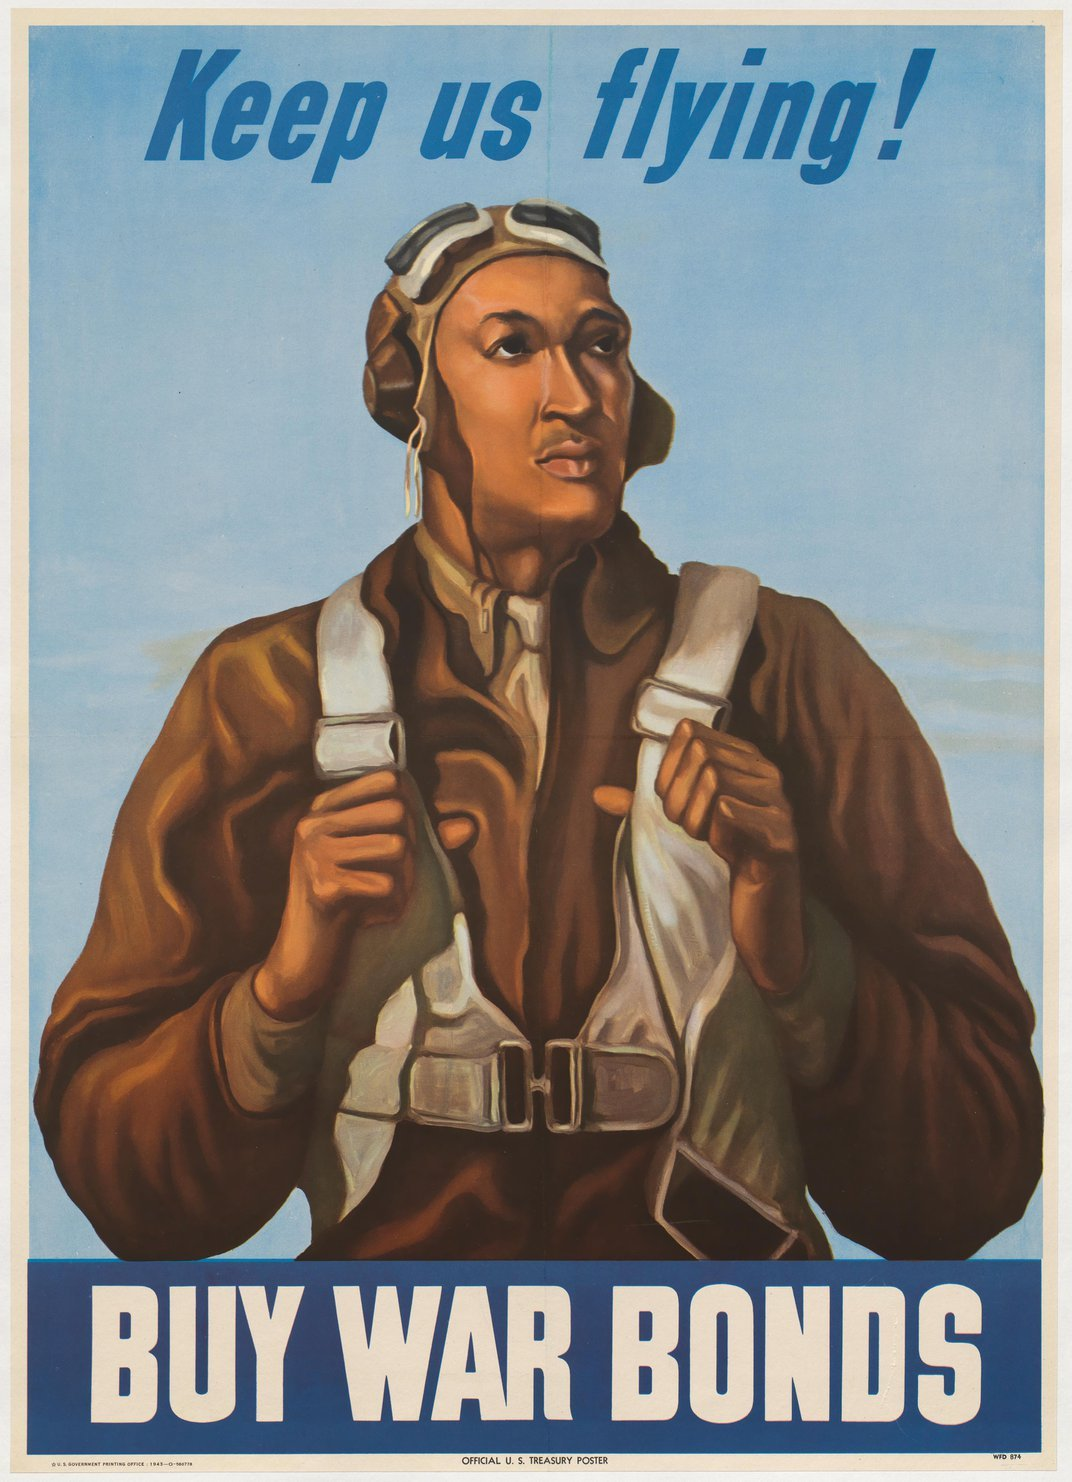 The Legacy of the Tuskegee Airmen Soars on the Wing of This World War II Aircraft